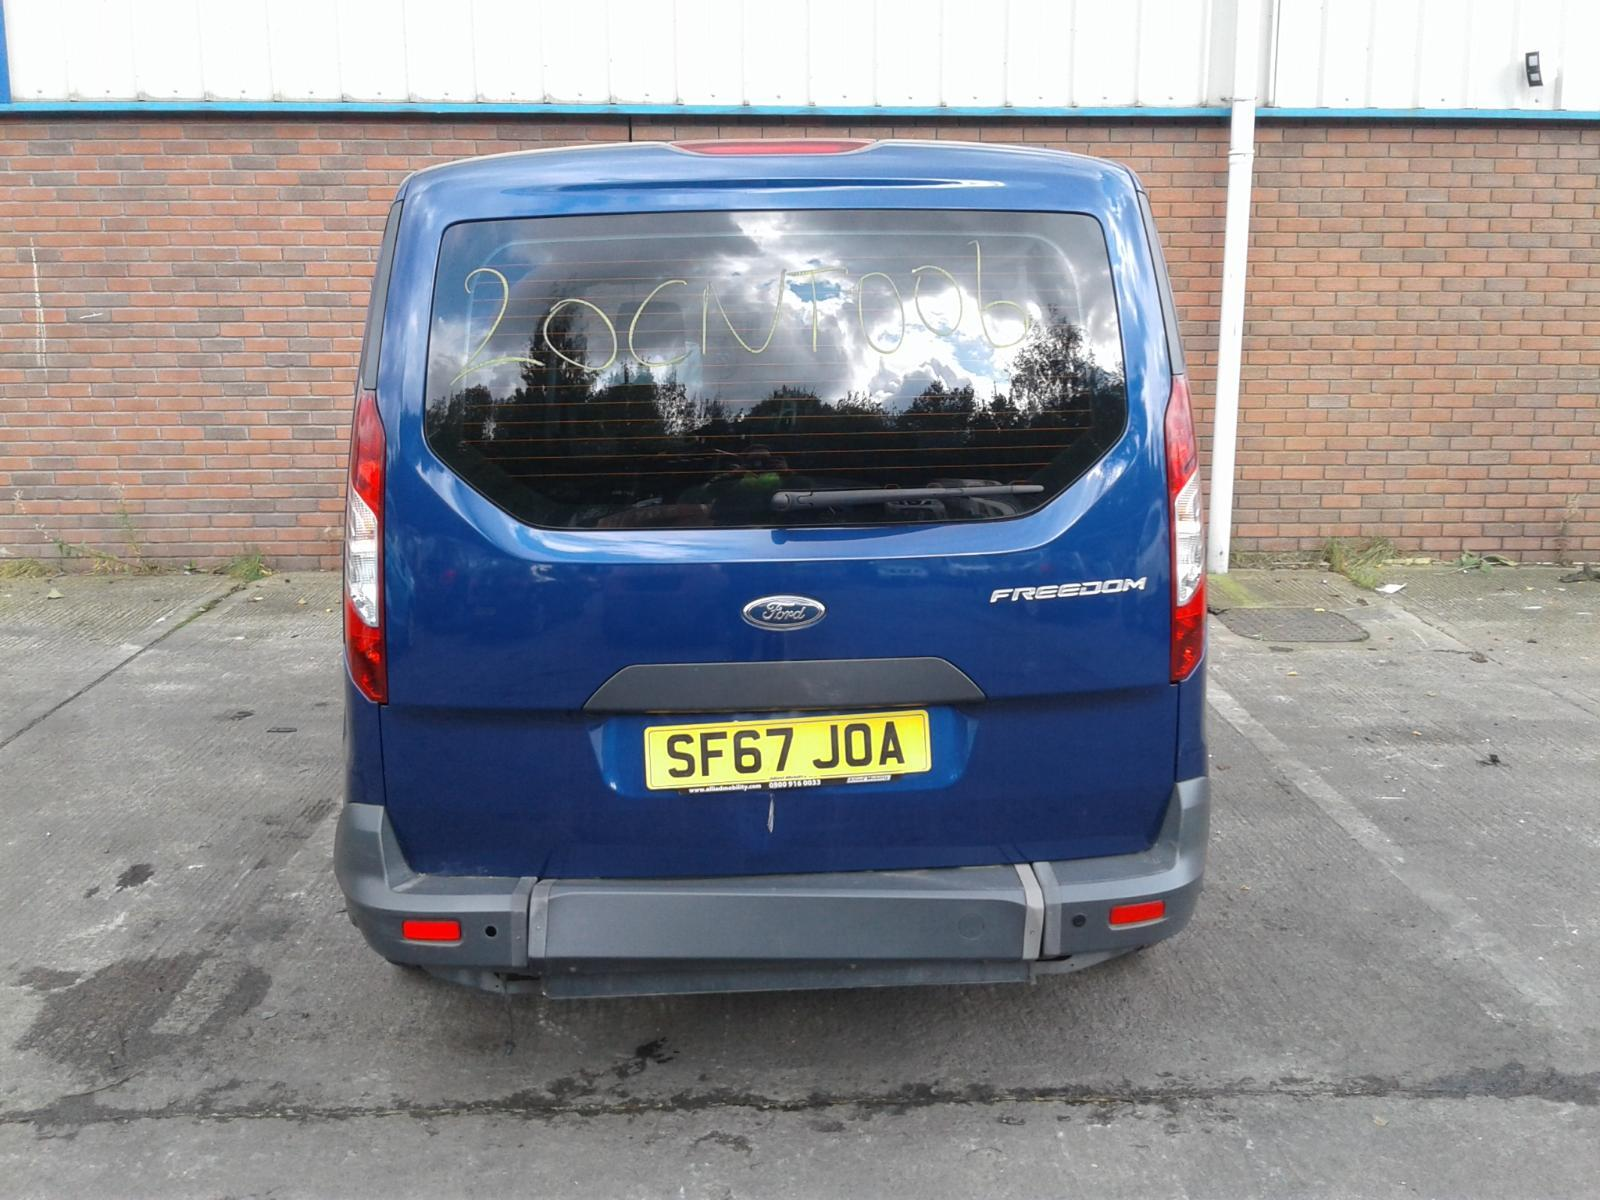 201 FORD TRANSIT CONNECT FREEDOM Image